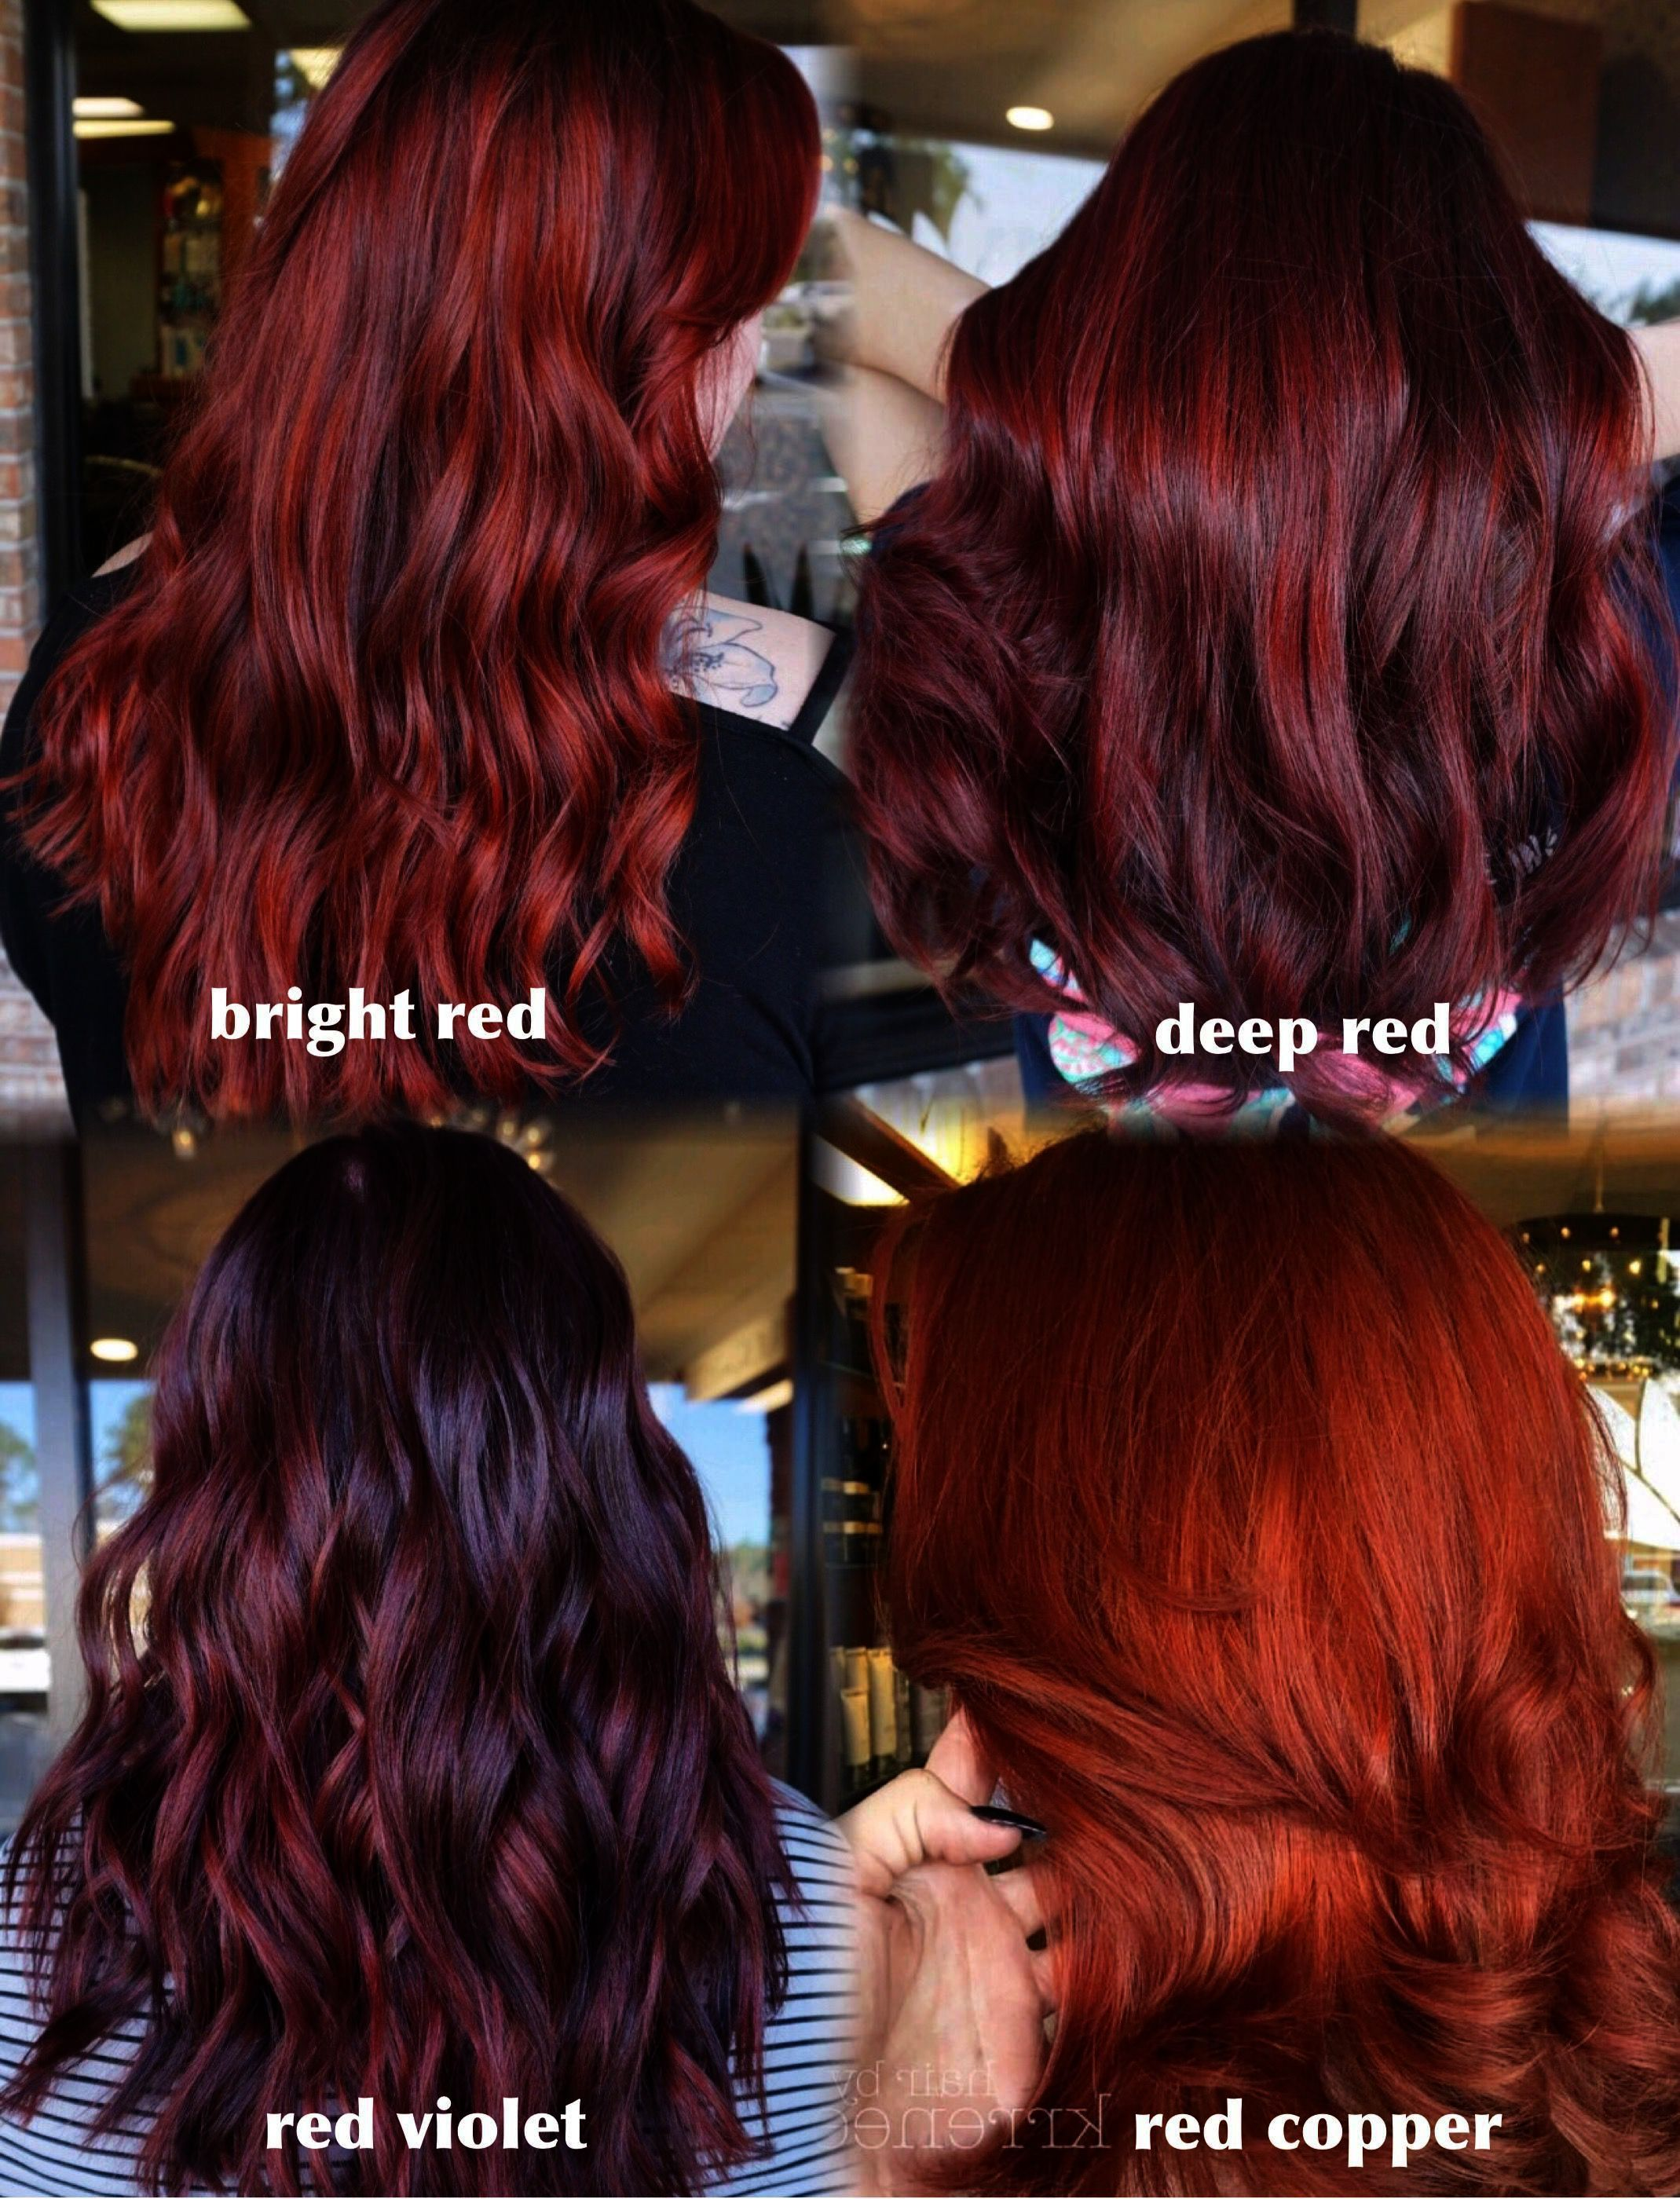 Hair Color Ideas Joico Our Hairspray Cast Now Between Hairstyles In 2019 Along With Blonde Hair Color I Red Hair Color Shades Red Hair Color Shades Of Red Hair